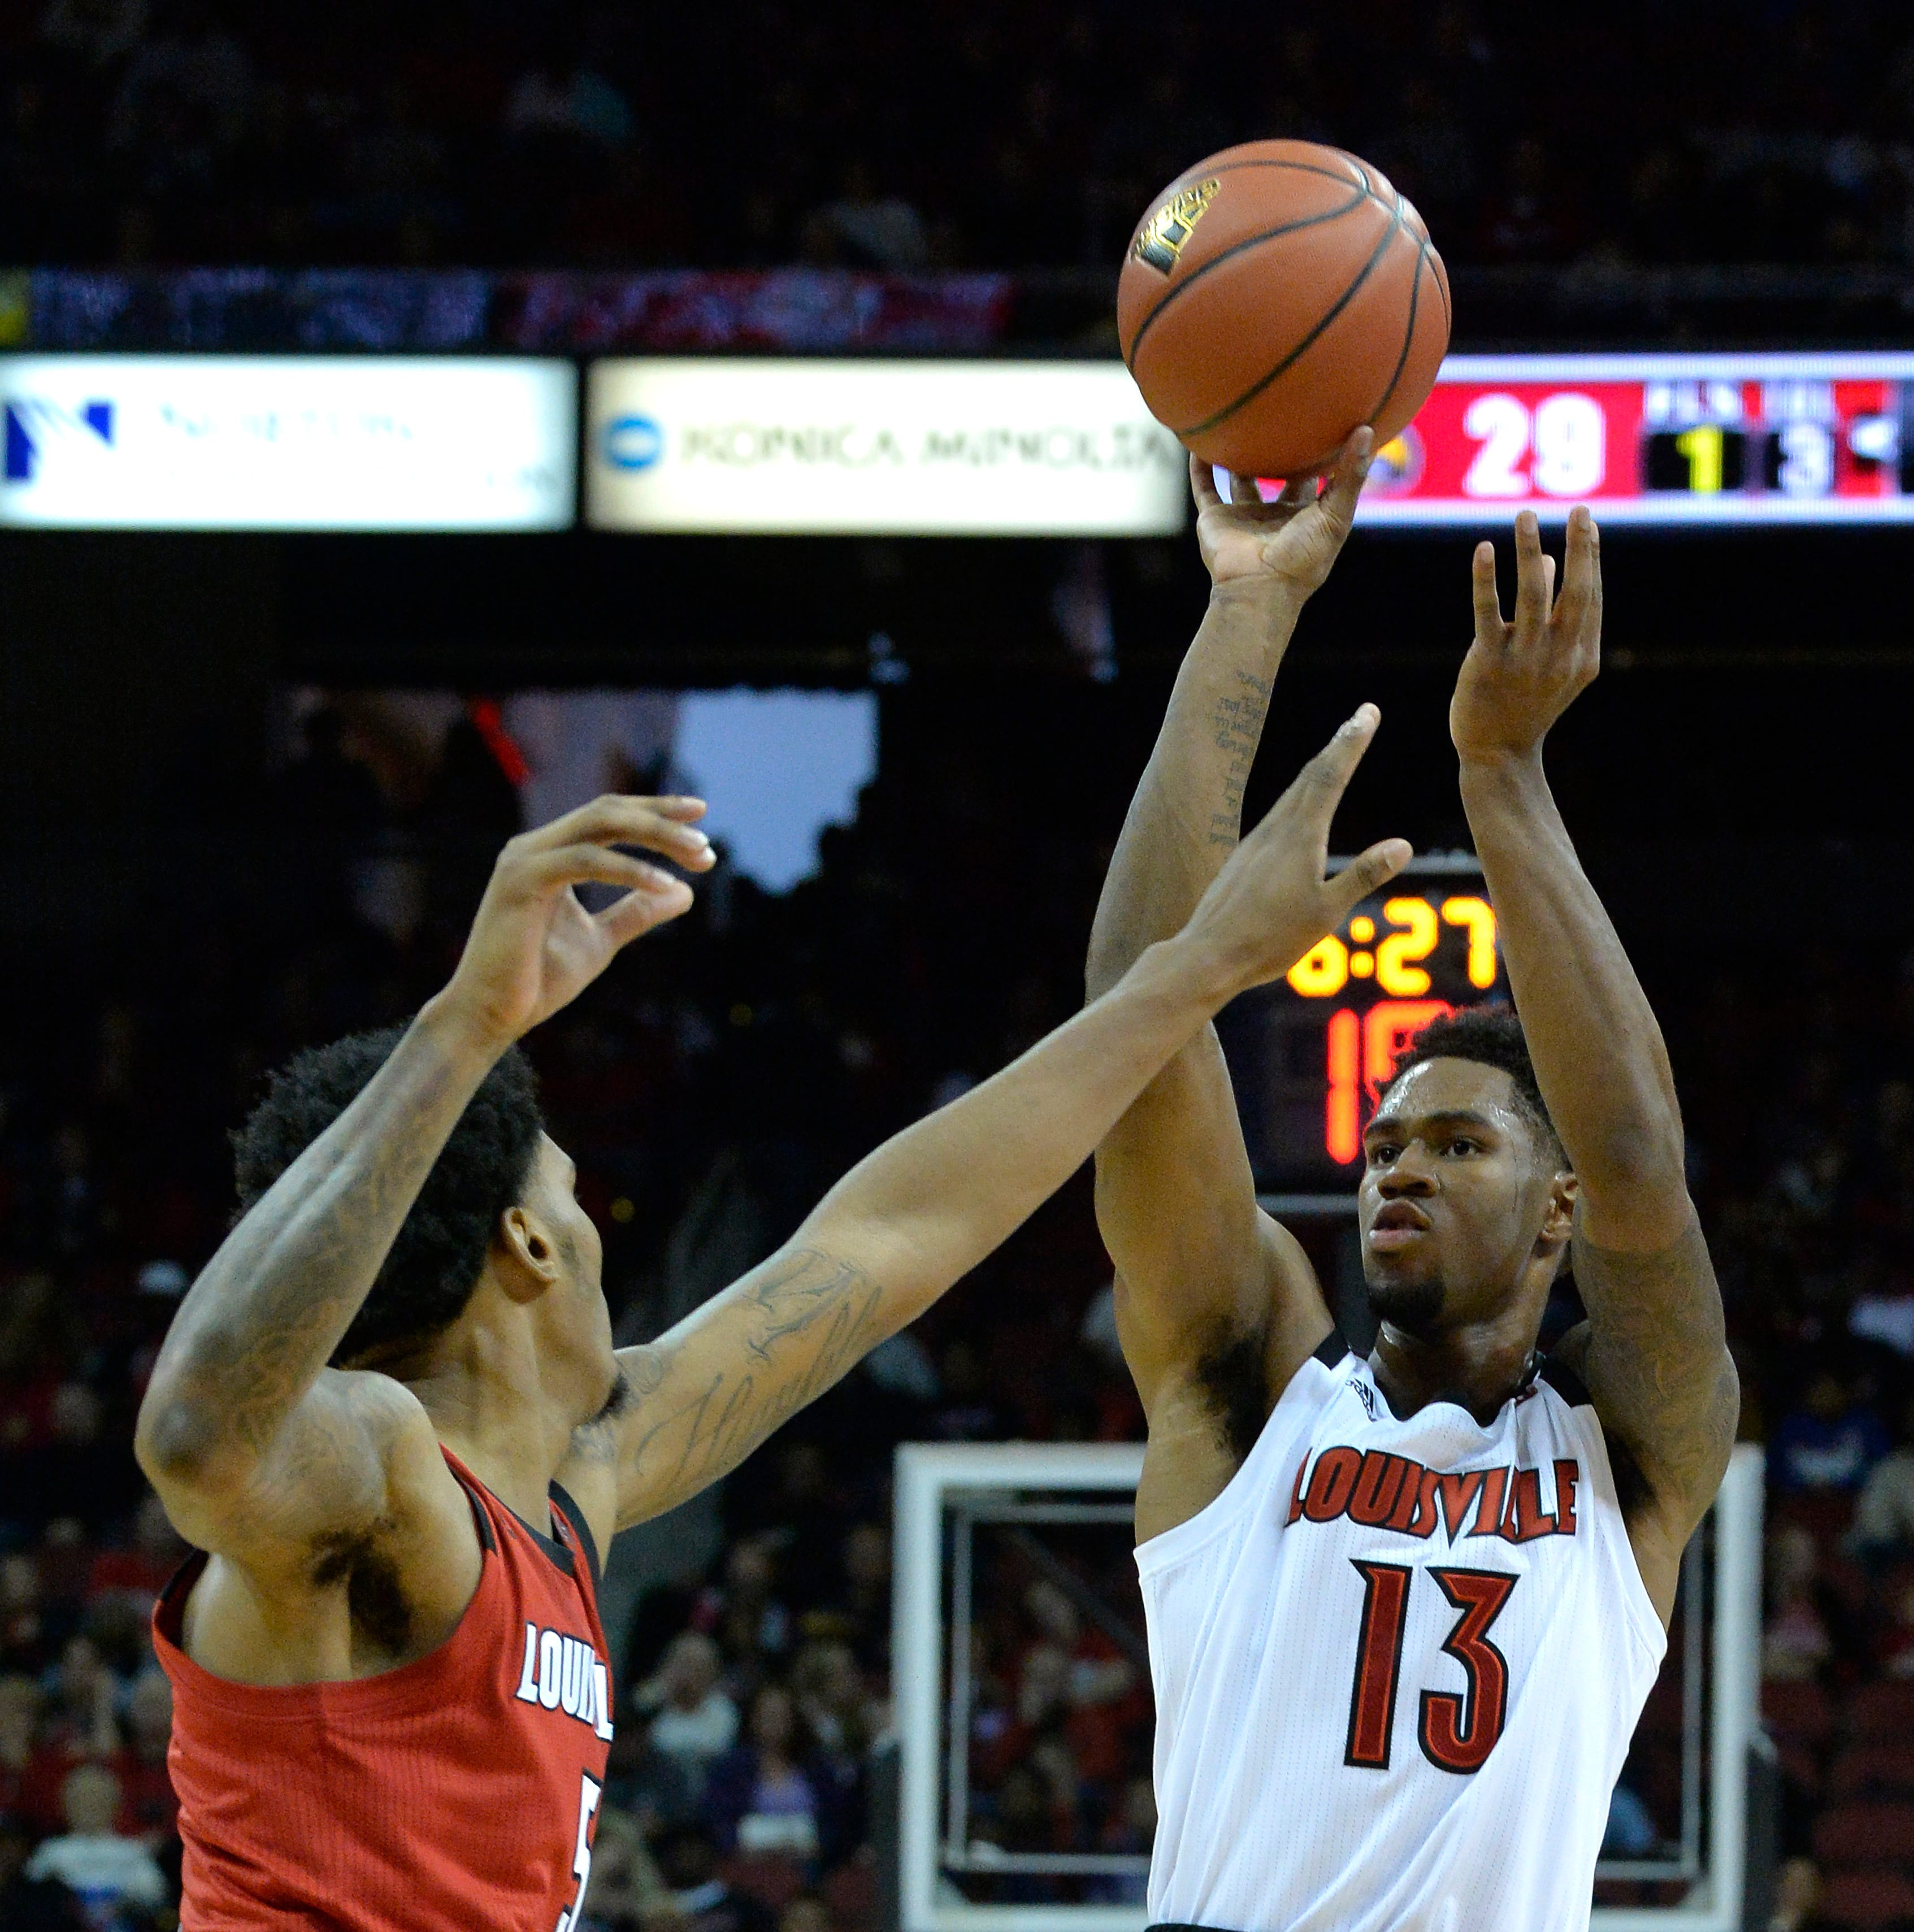 Key takeaways from Louisville basketball's Red-White scrimmage